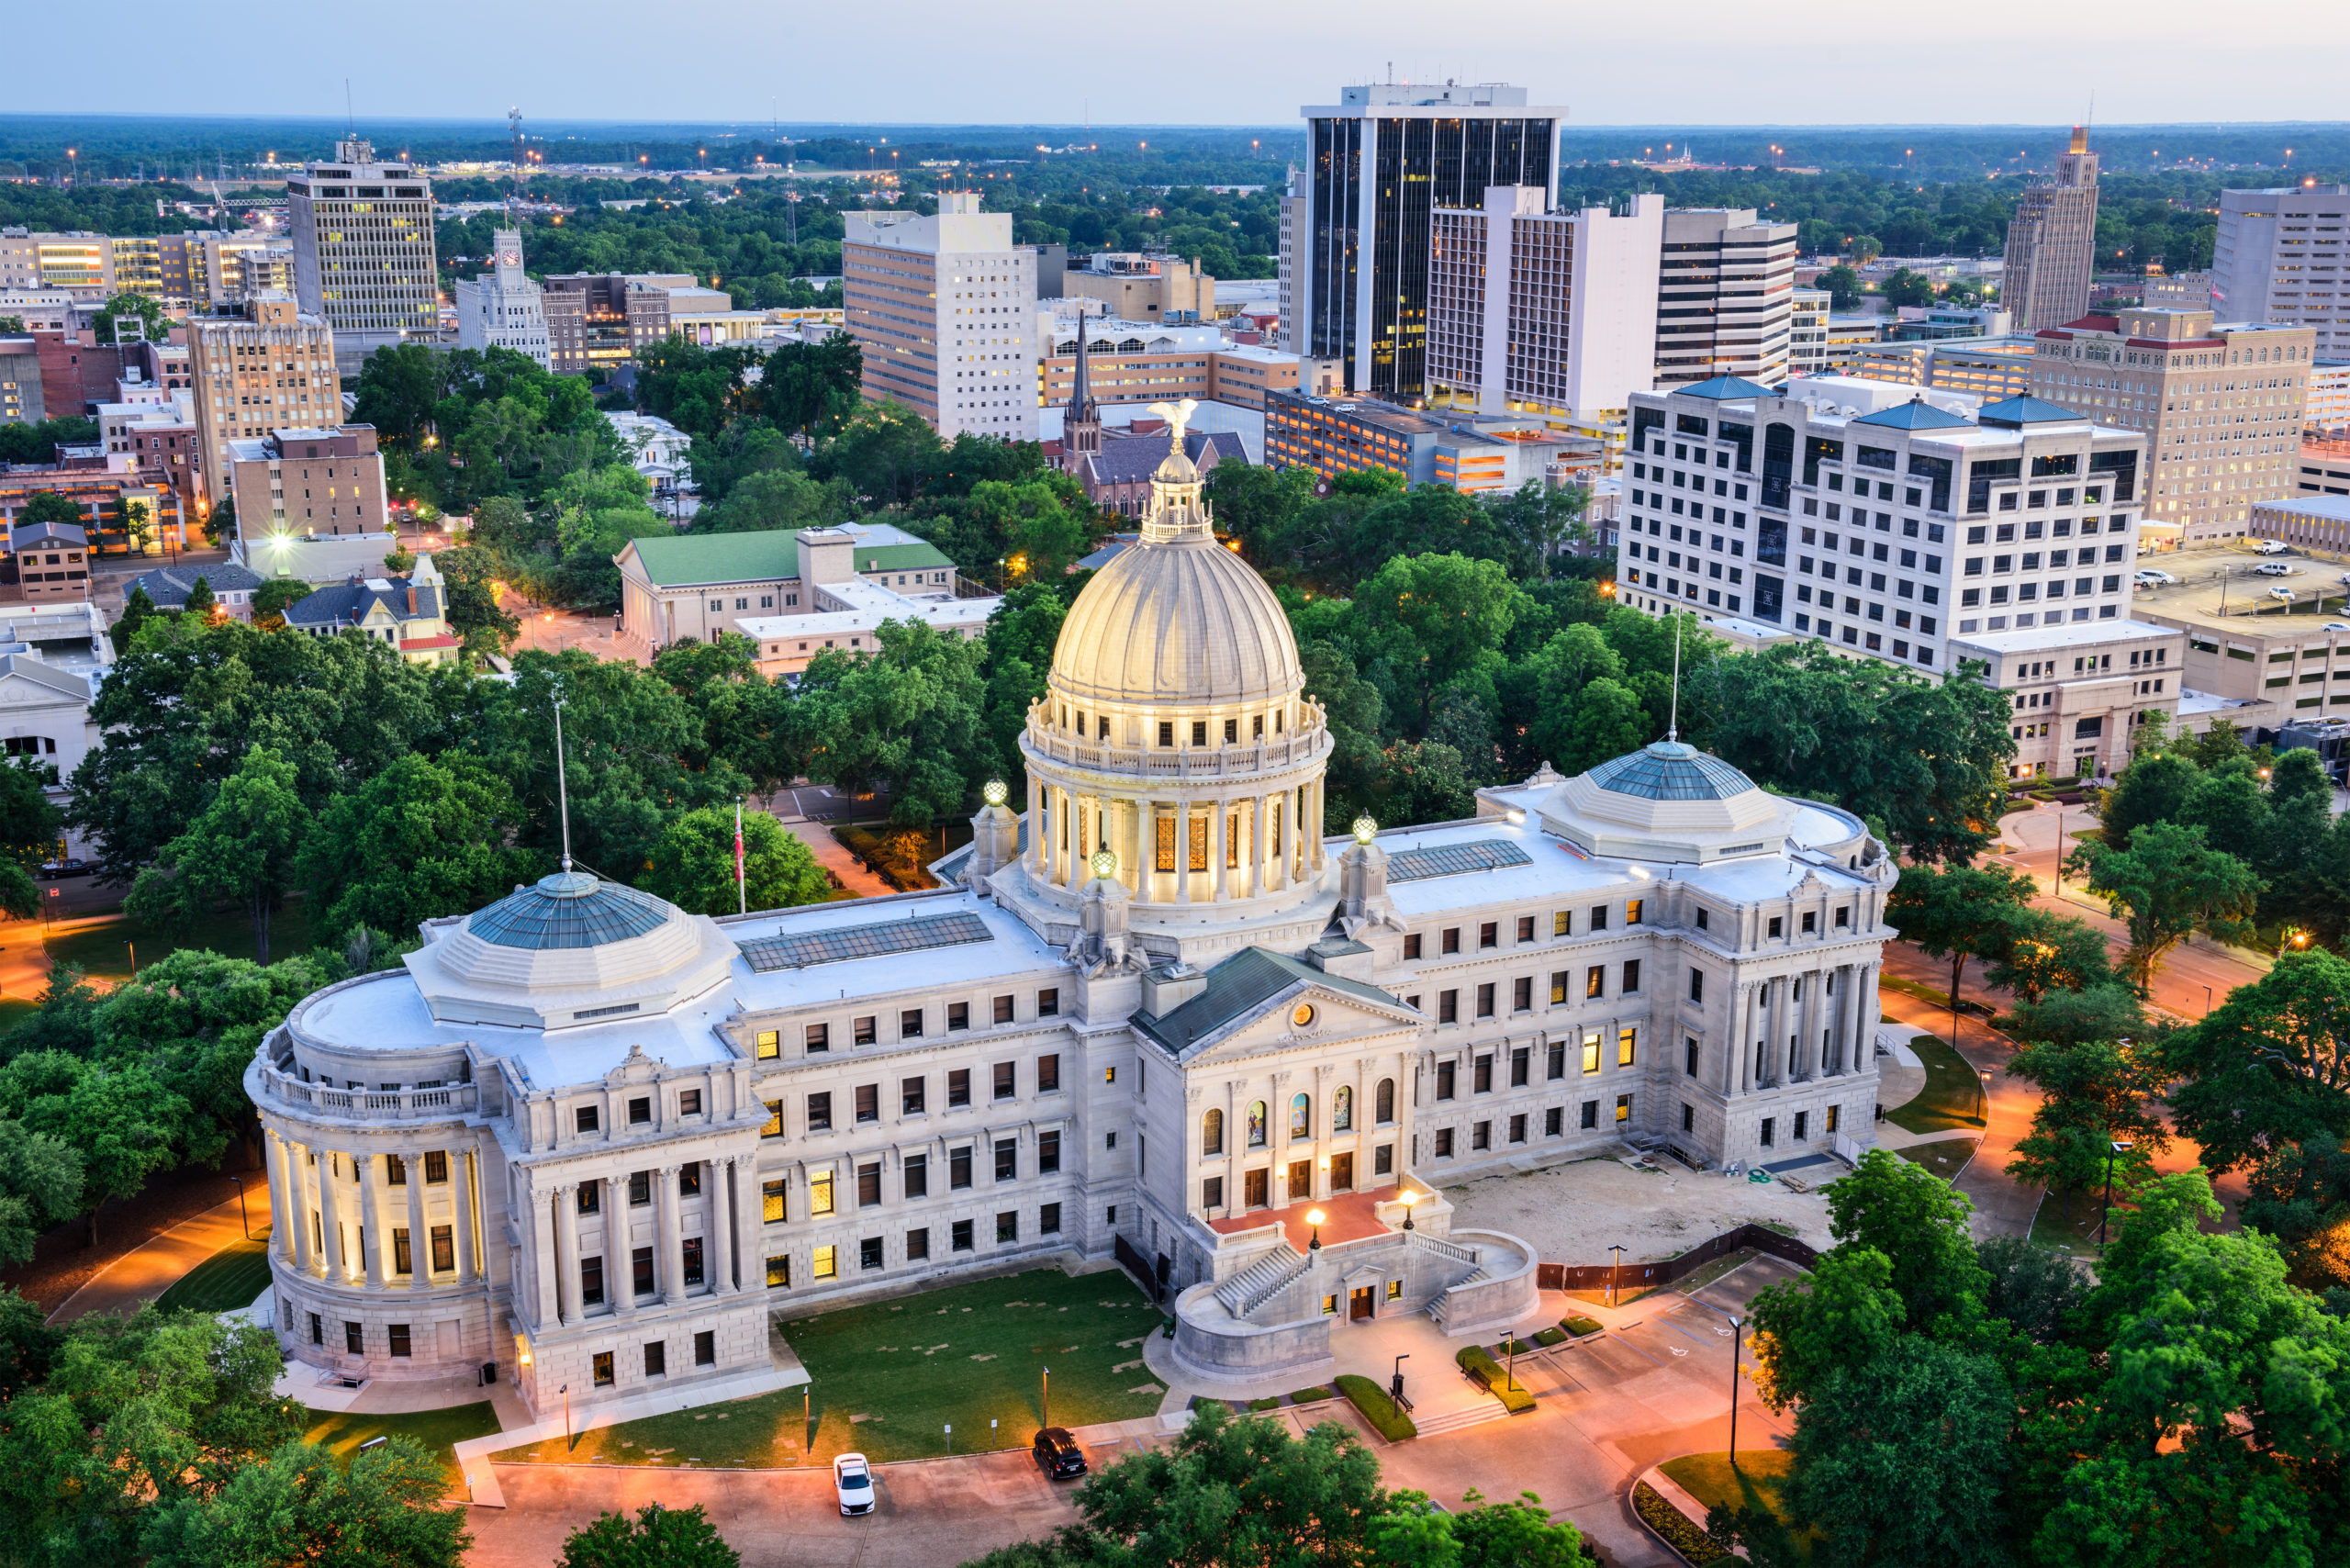 The state capital of Mississippi